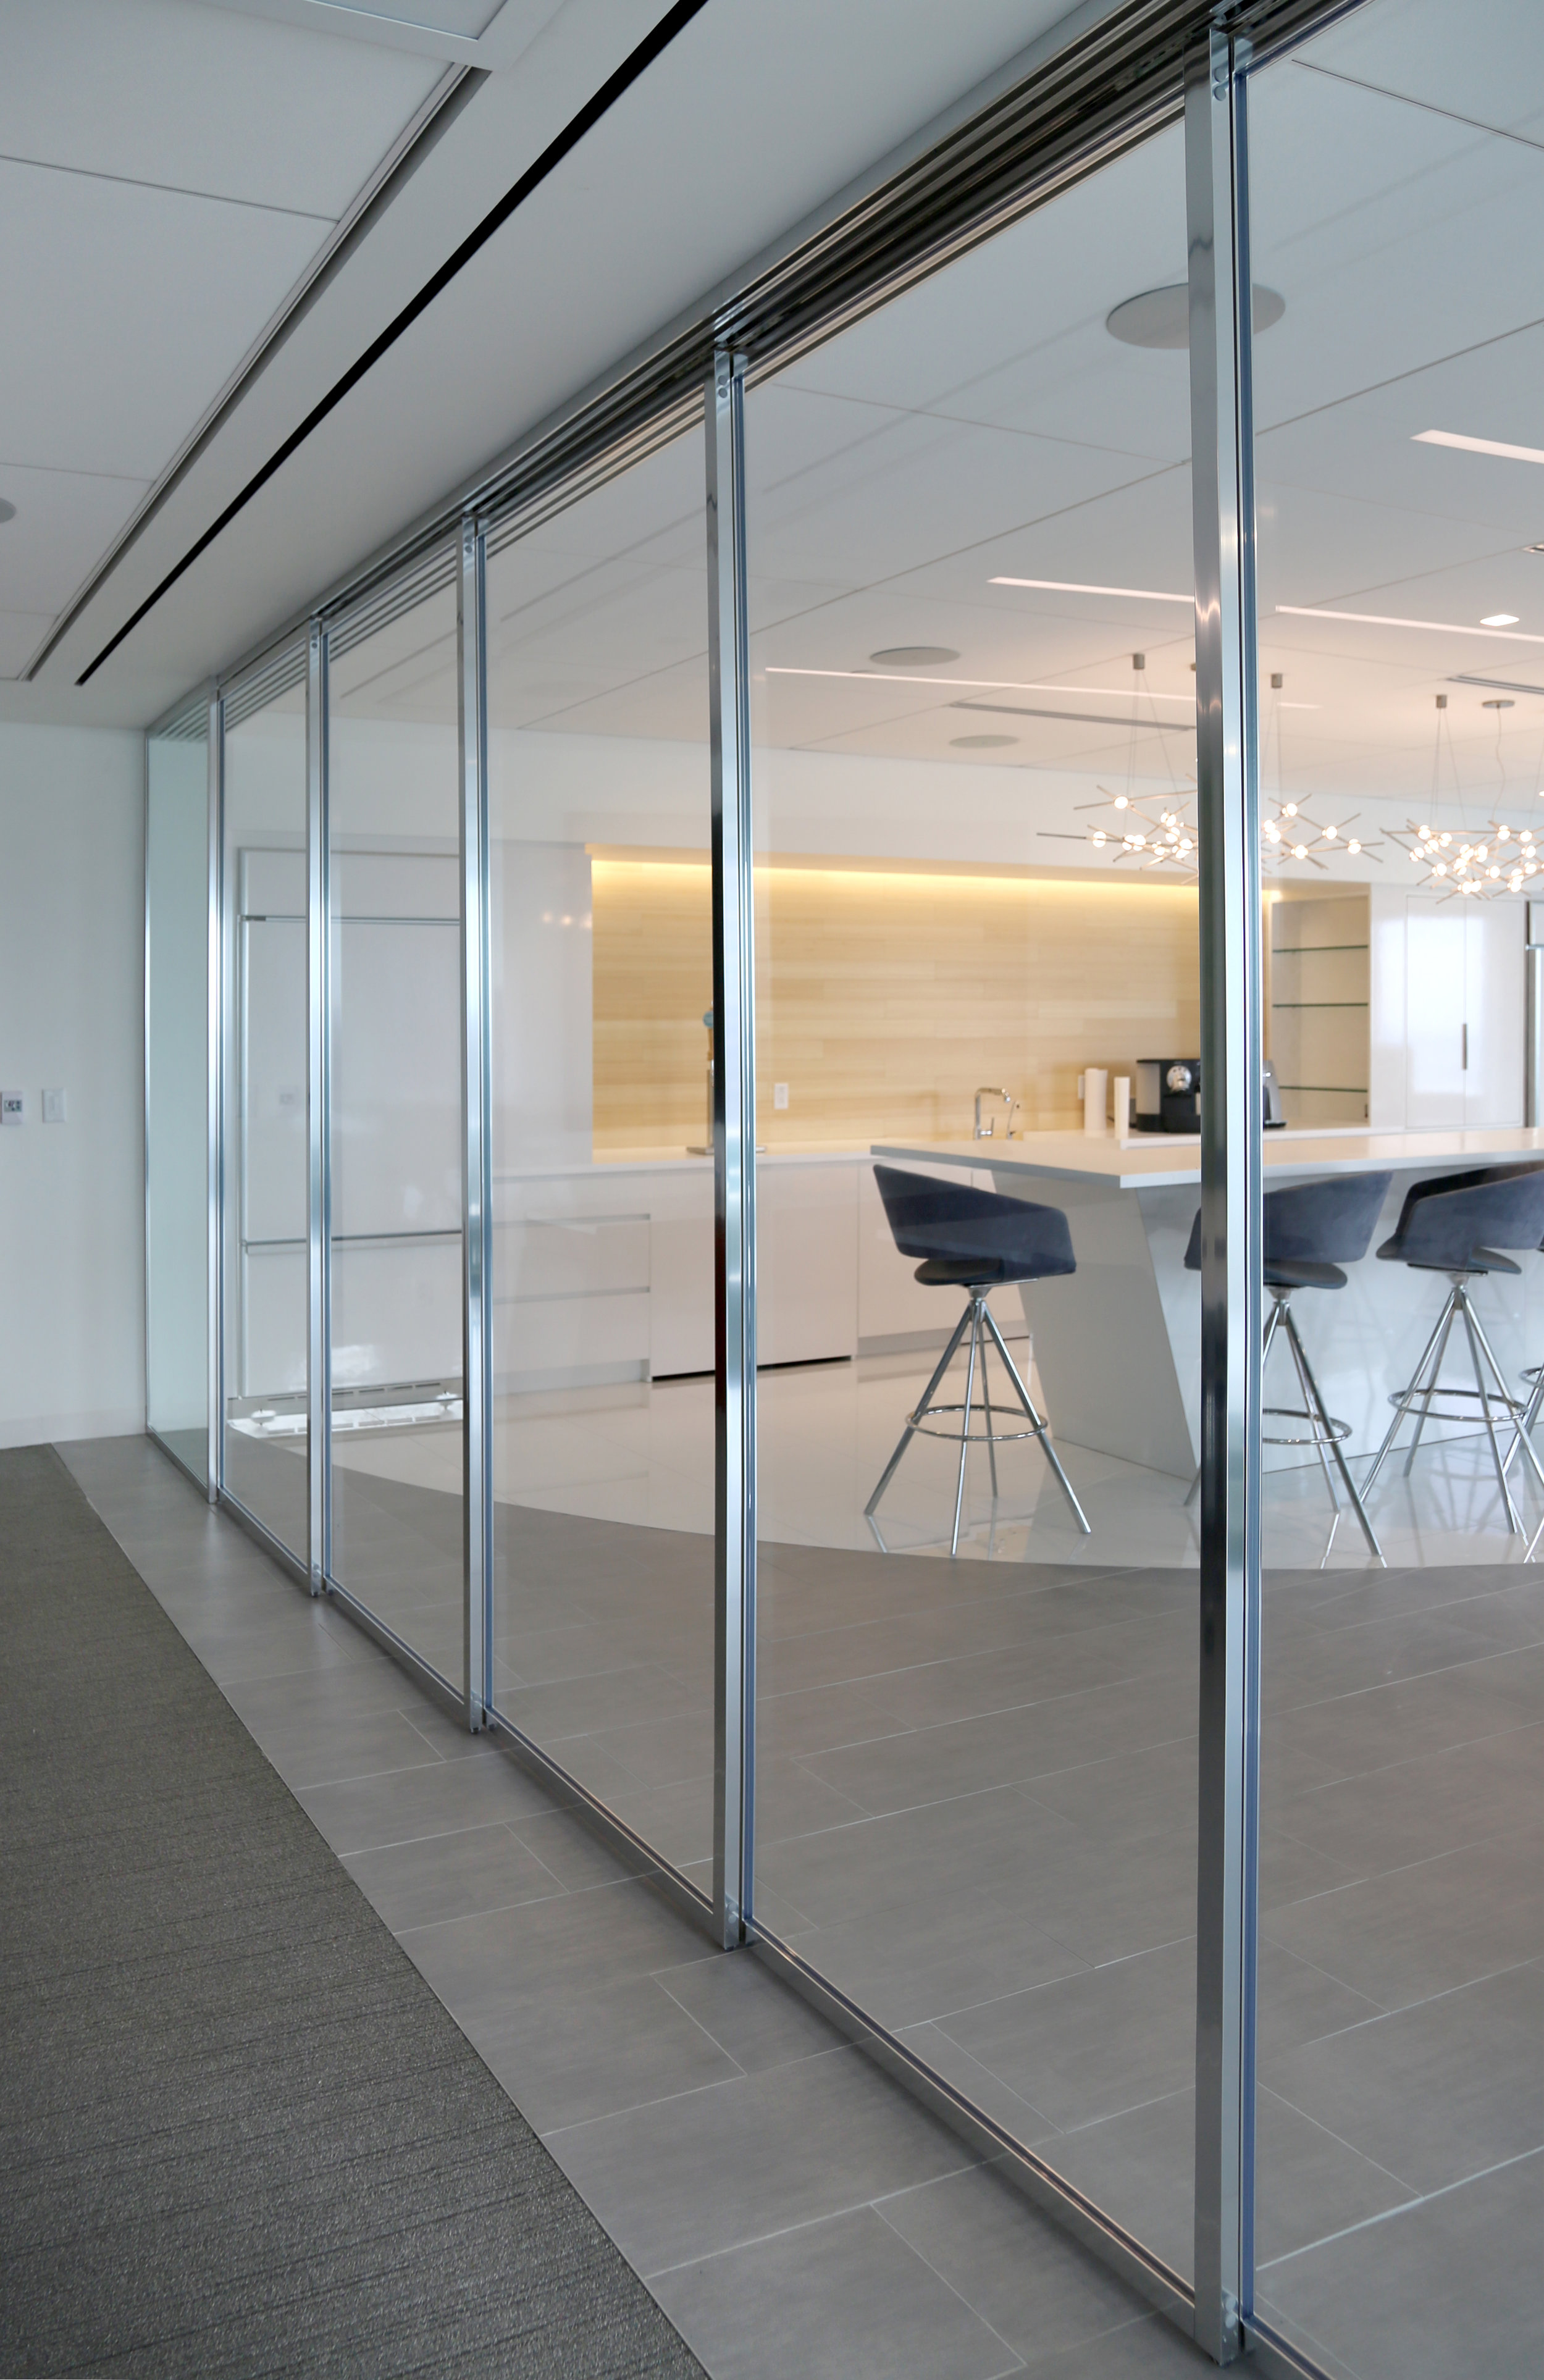 Modernus Glass Wall System with Sliding Panels - Spaceworks AI.jpg